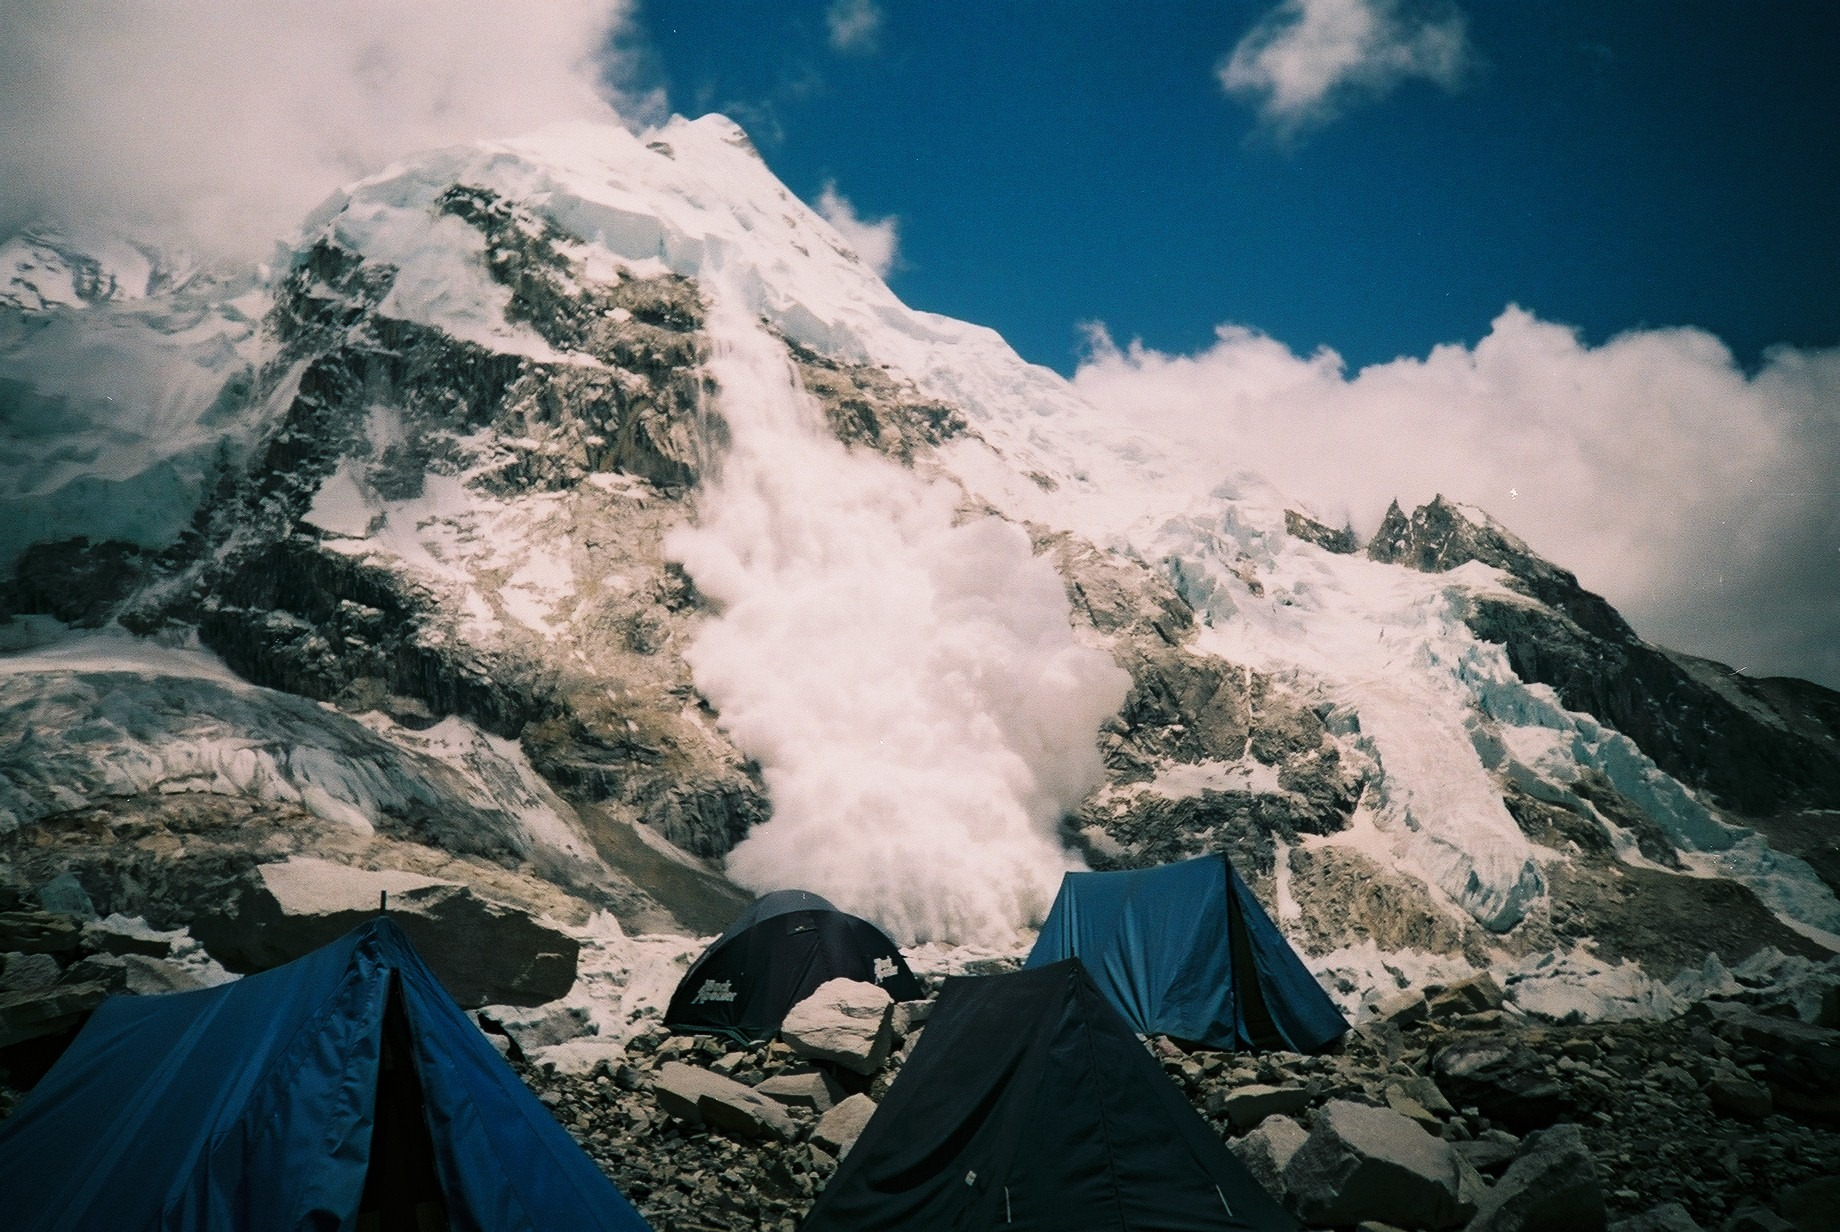 web_image_Conroy_everest_day24